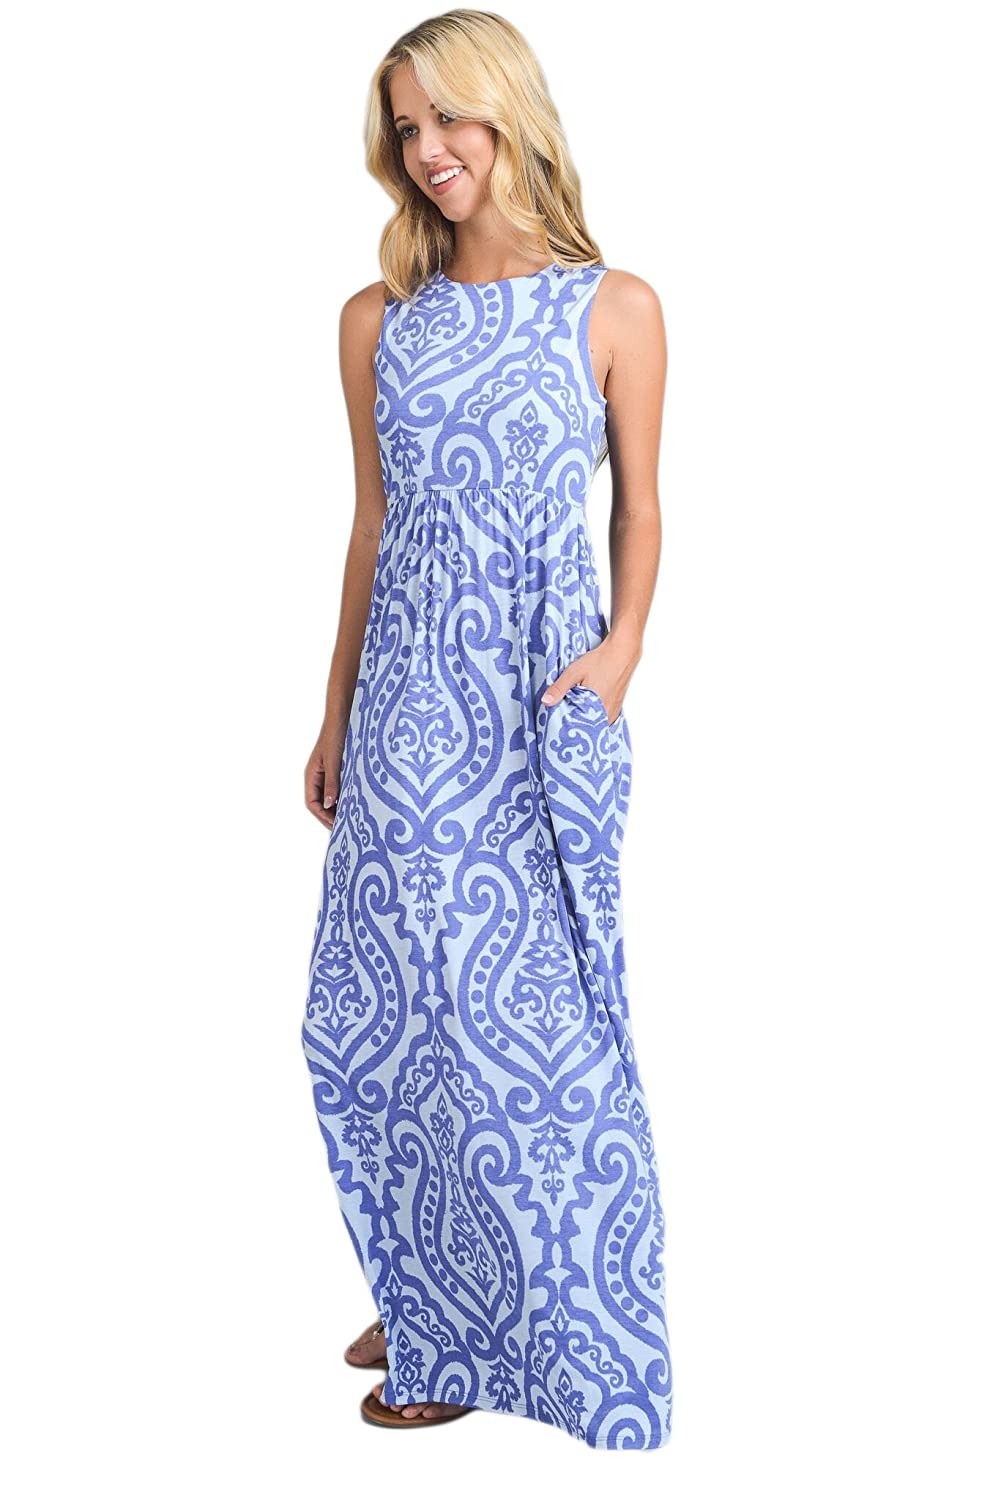 c13d32d2012b Vanilla Bay Signature Racerback Maxi Dress at Amazon Women's Clothing store: